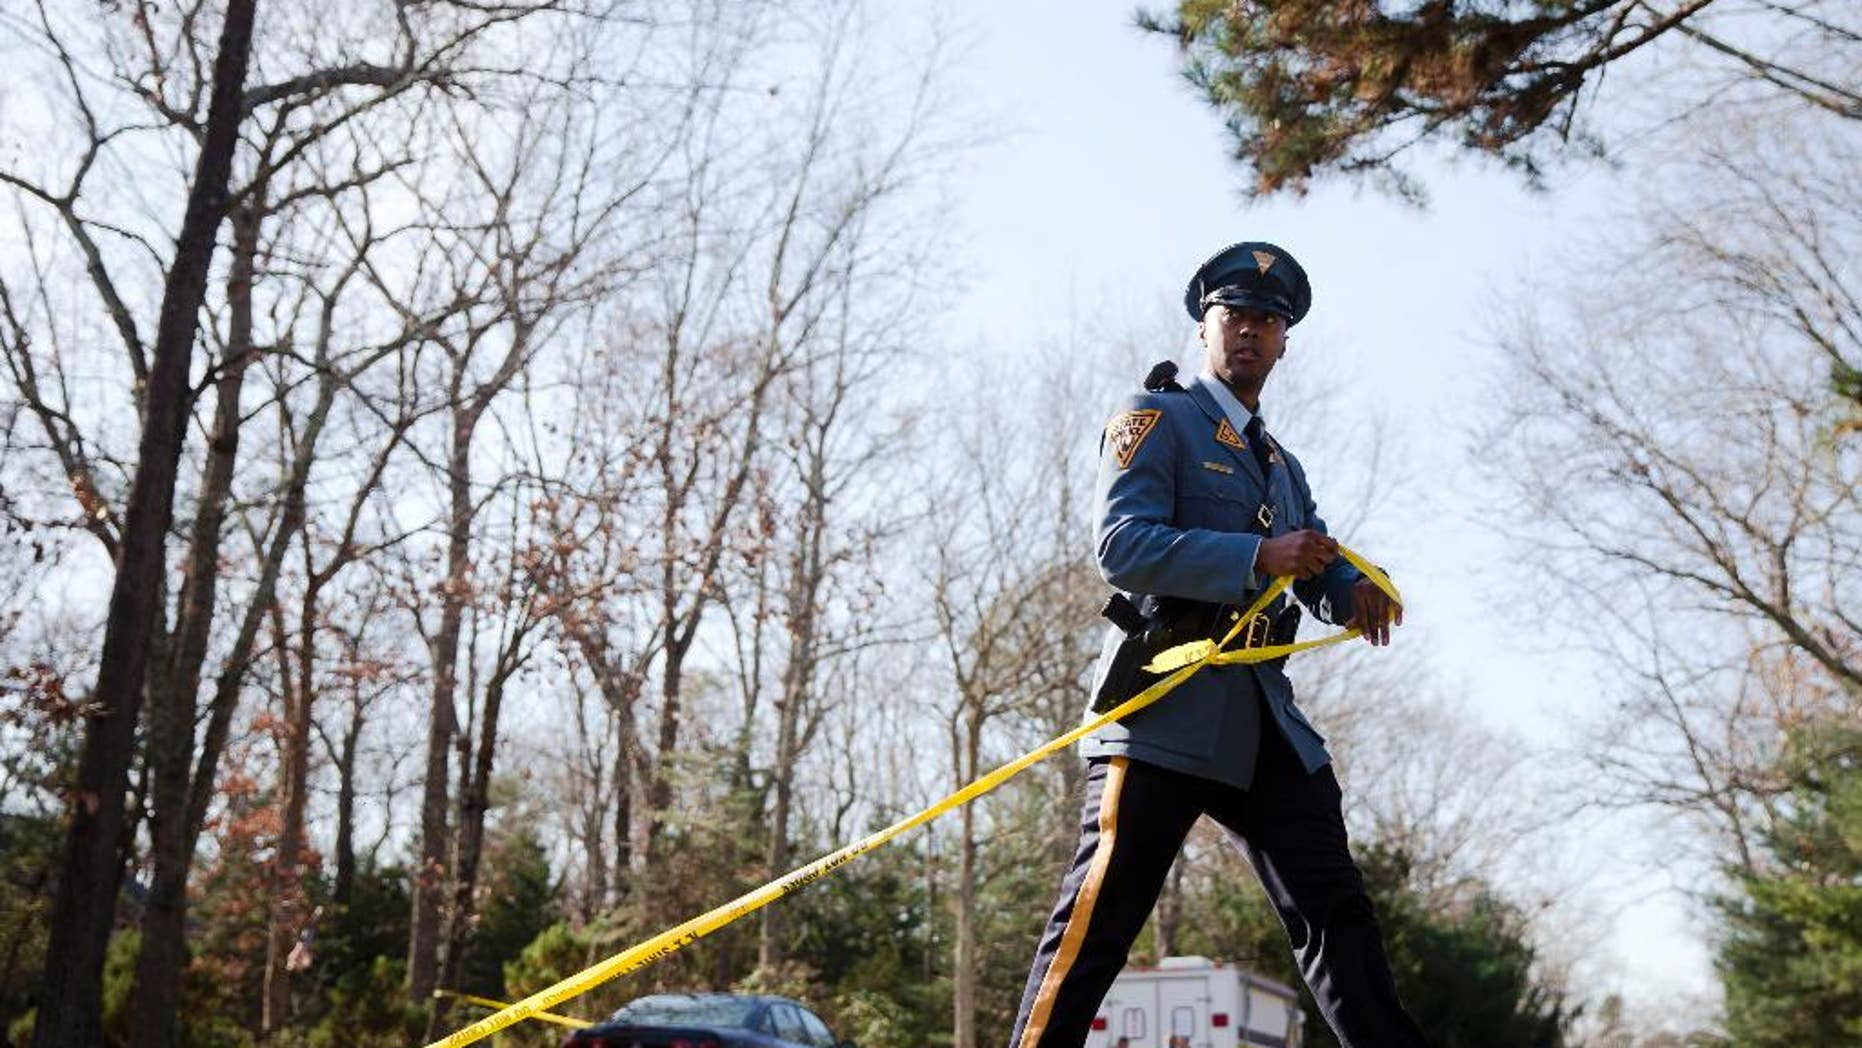 A New Jersey State Police trooper secures a police line at the scene of a shooting, Thursday, Nov. 20, 2014, in Tabernacle, N.J. A shooting at the home in a secluded wooded area of southern New Jersey left two children dead and a woman and another child wounded, state police said Thursday.  (AP Photo/Matt Rourke)